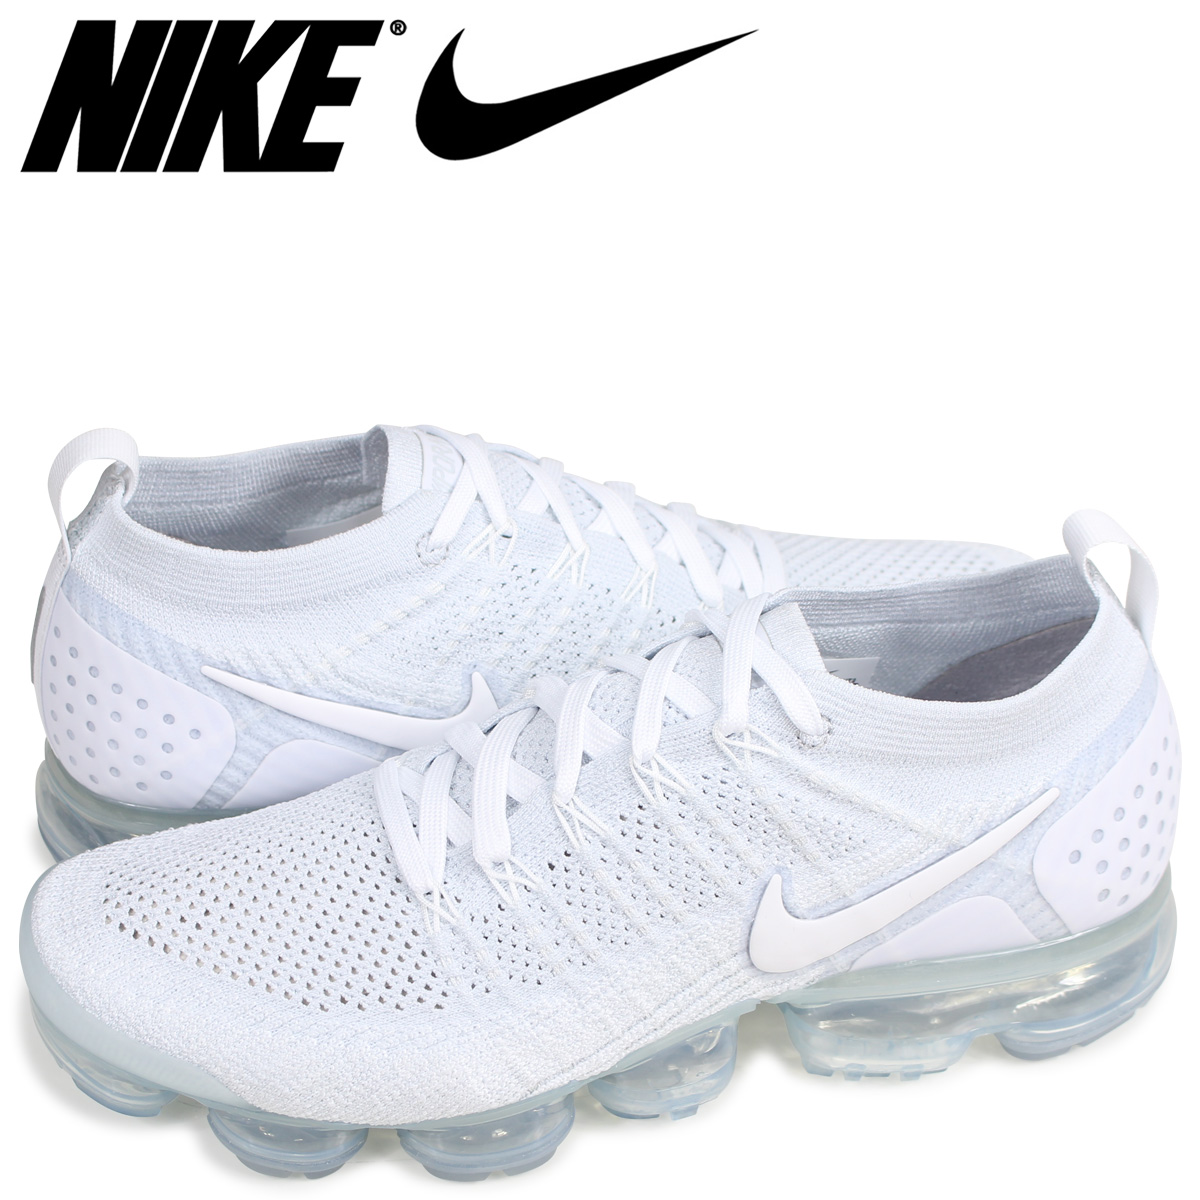 89c53185a9bc NIKE AIR VAPORMAX FLYKNIT 2 Nike air vapor max fried food knit 2 sneakers  men white 942